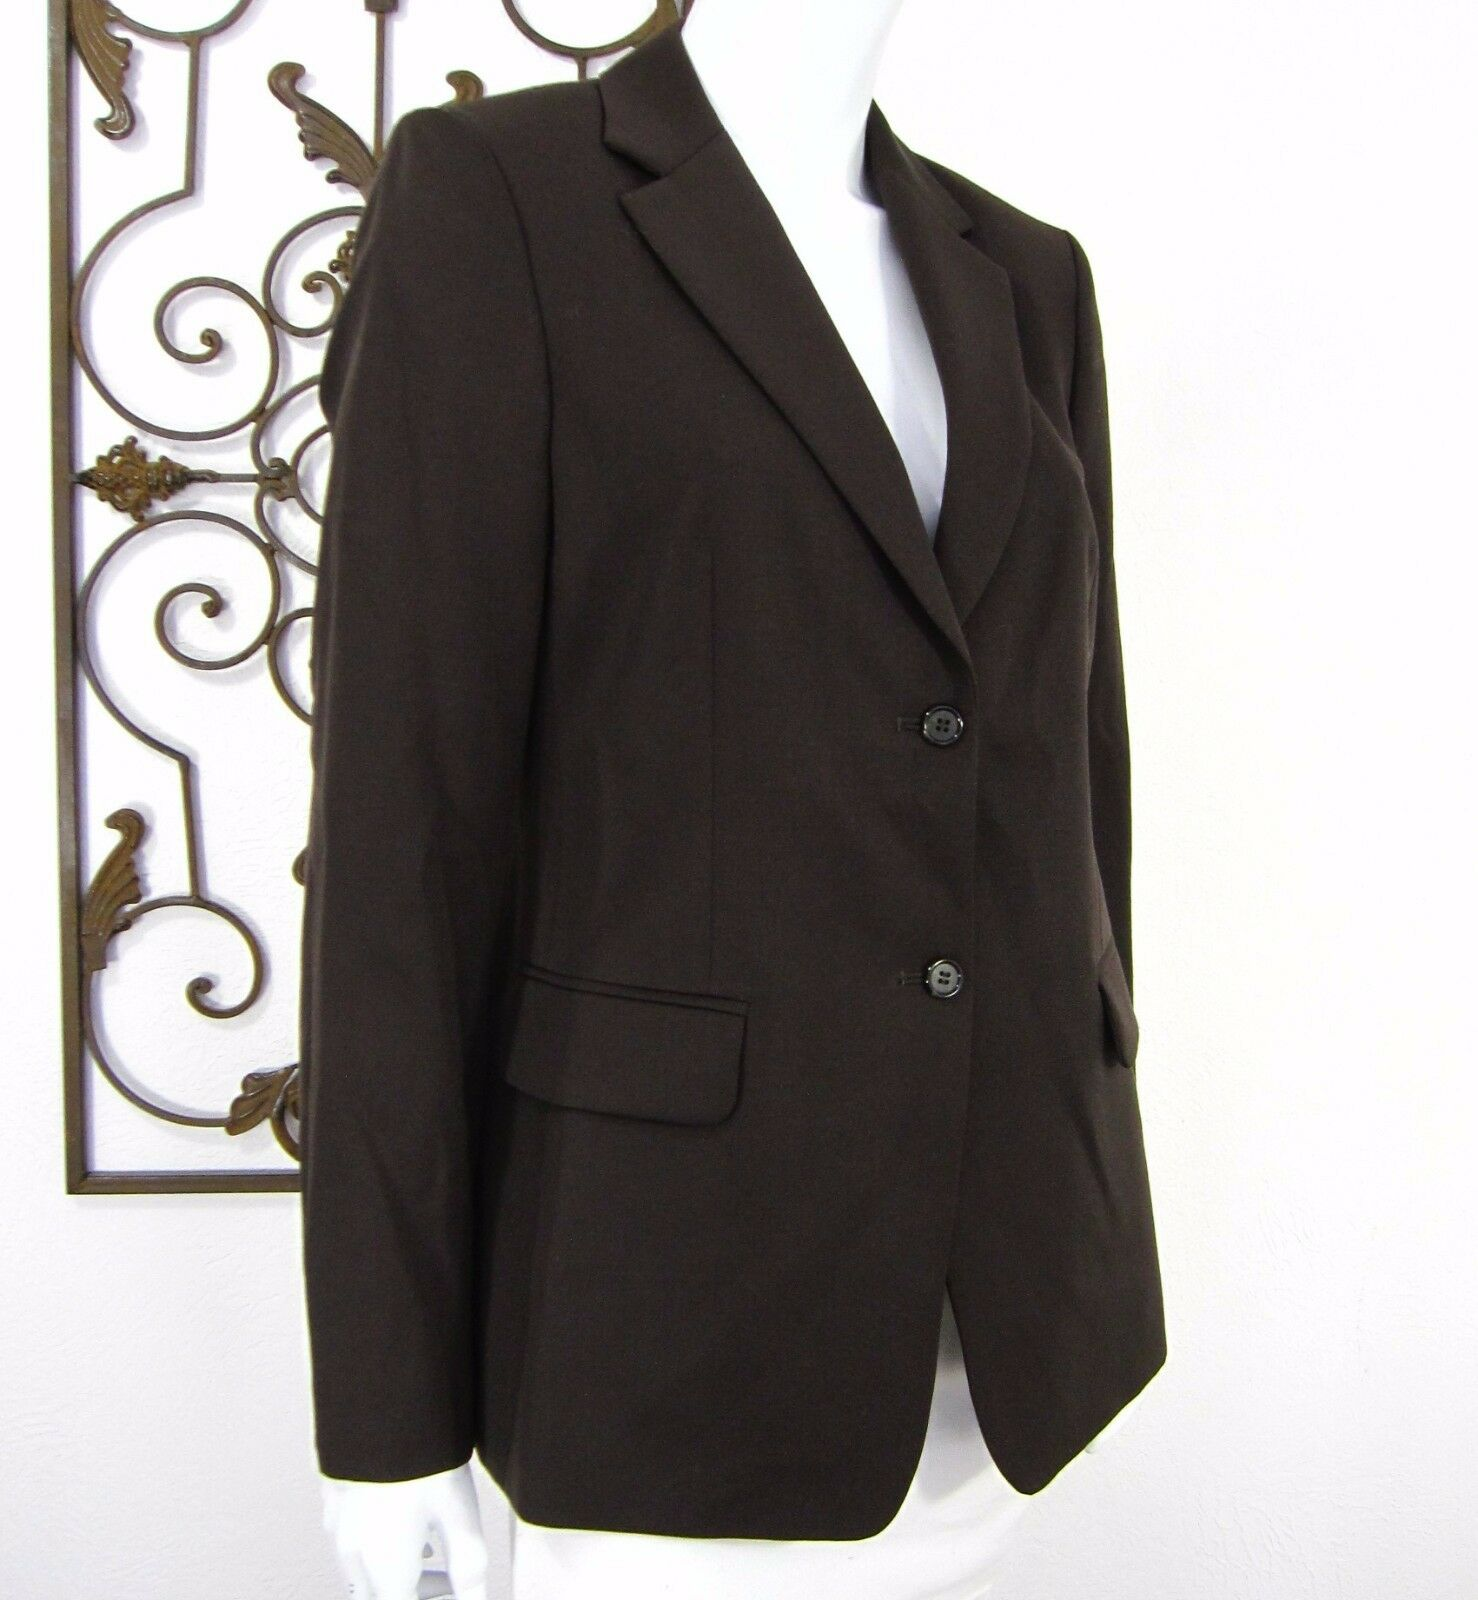 766e1b53722 J Crew long sleeve wool BLAZER 10 brown single breasted two button notch  lapel